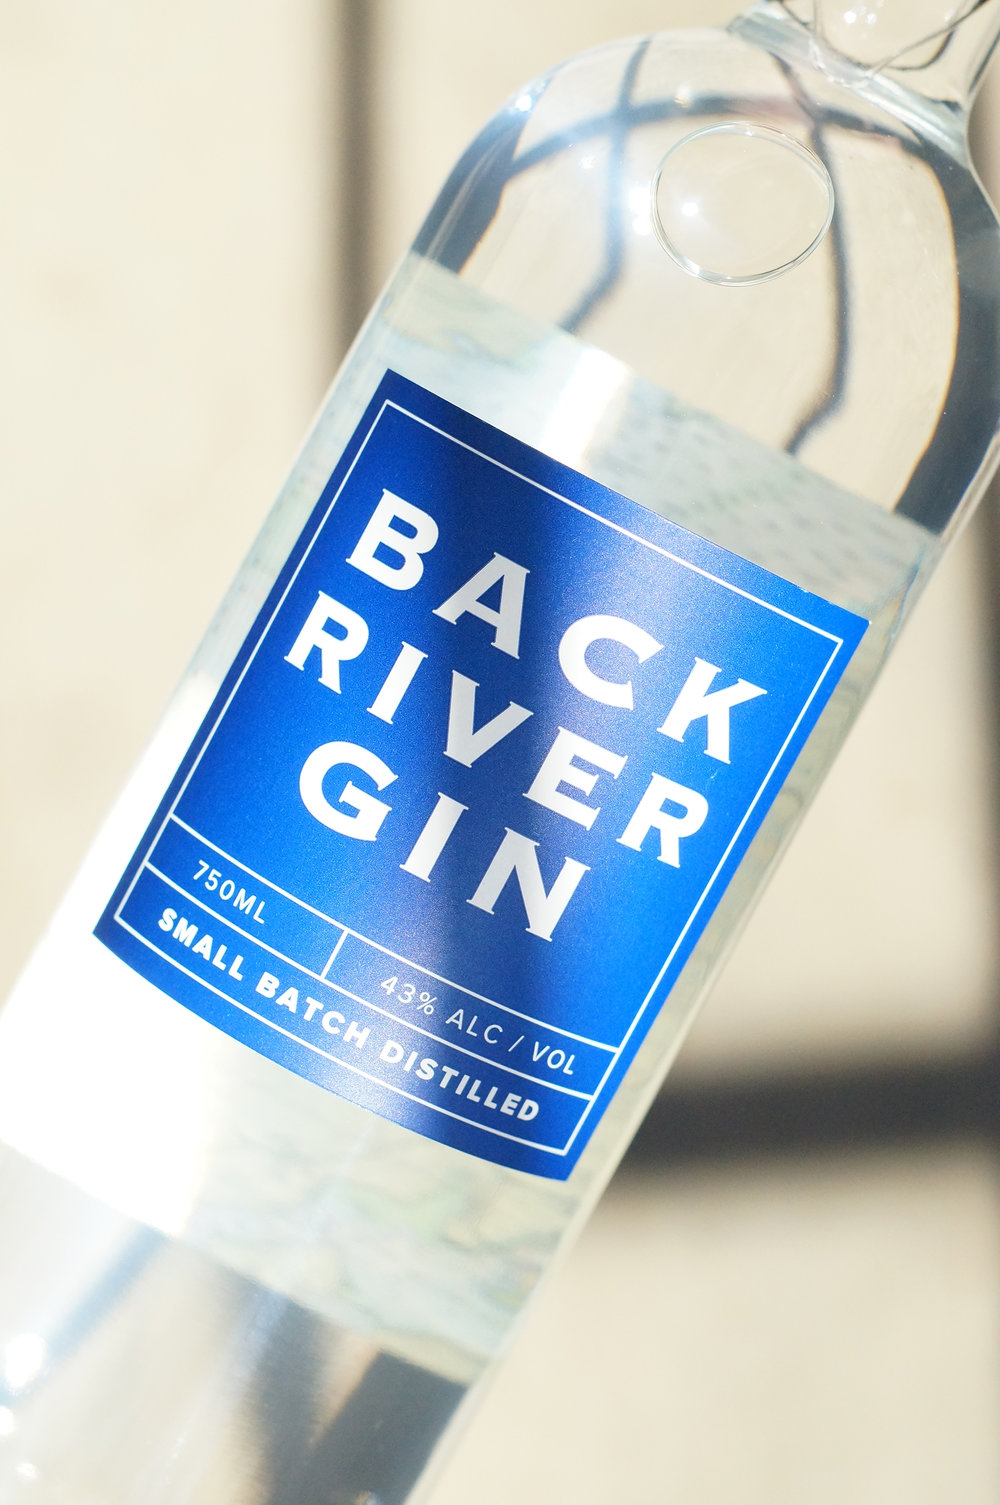 Back River Gin - Gin made in the London tradition with a Maine twist: blueberries. The combination of organic botanicals, Maine blueberries, and sea air give our gin its refreshing taste.Spirit Journalsays, 'The aroma's unlike any other gin in the world, and better than a whole slew of them… Finishes ultra-clean, amazingly tart and acidic, yet eye-poppingly fresh.'Wine Enthusiastcalls it 'A creative and sophisticated gin.' Come see us and taste a sample of this award winning spirit.TOP 50 SPIRITS Wine EnthusiastMAINE'S BEST GIN DownEast Magazine 2009SUPERB (95) / Highly RecommendedWine Enthusiast